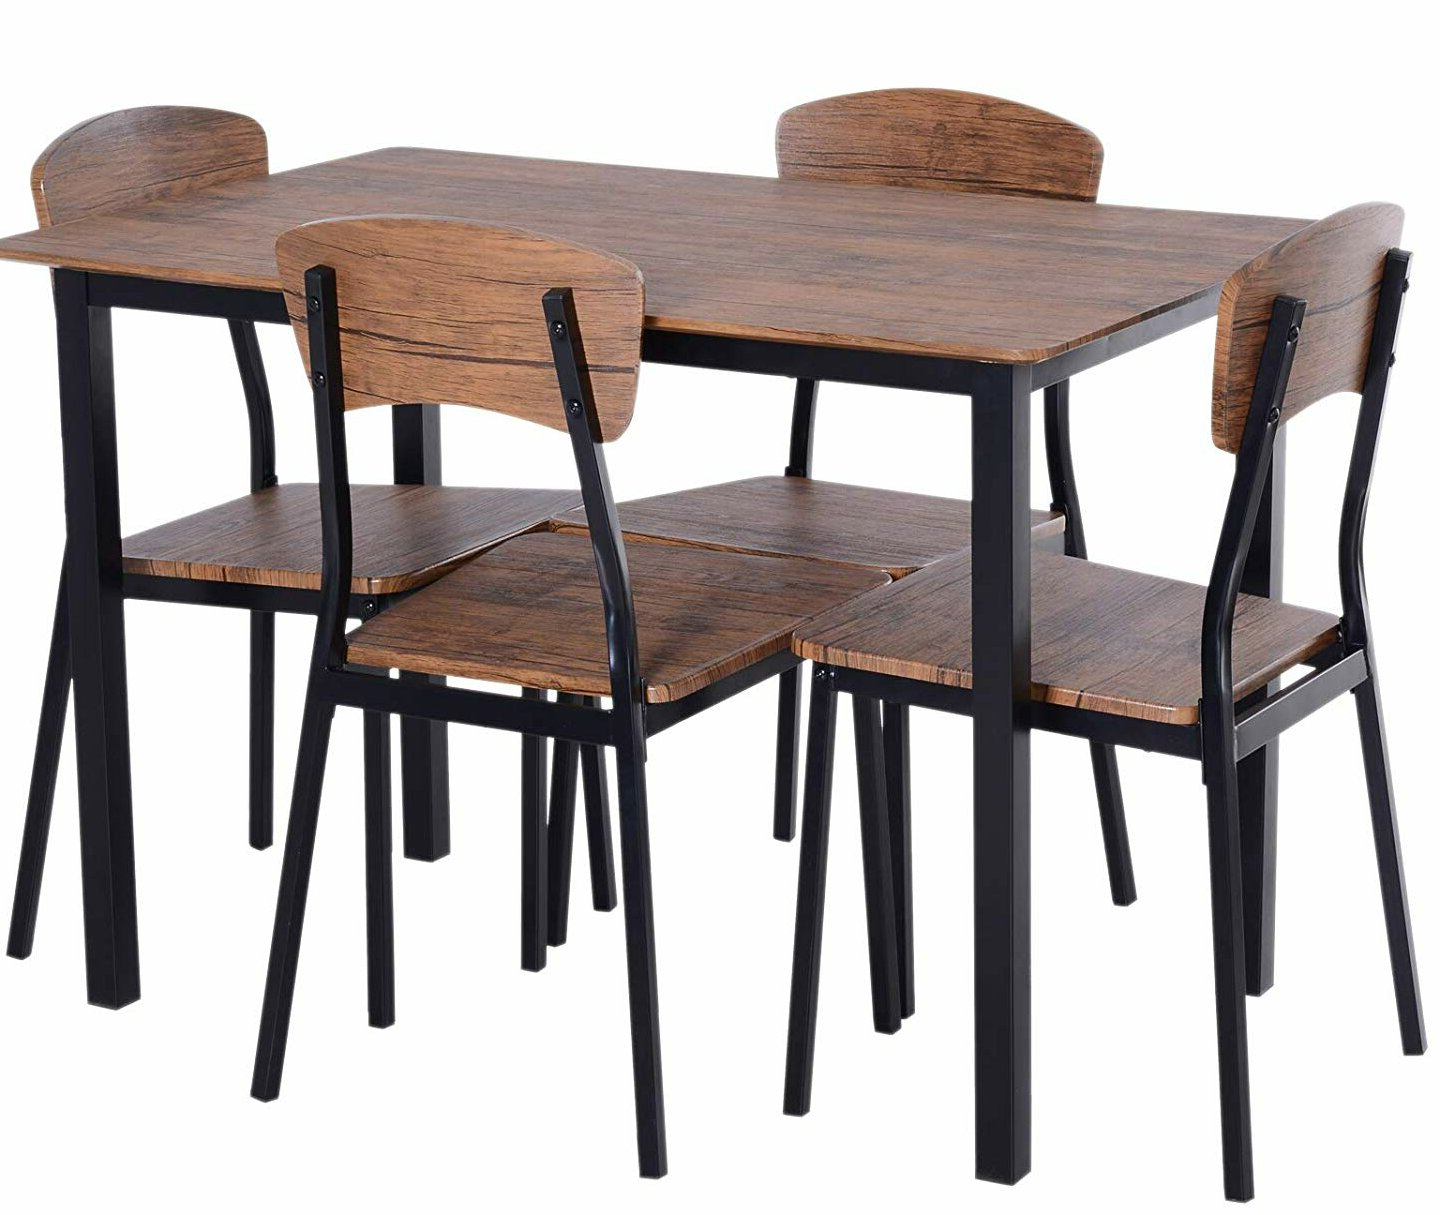 Union Rustic Castellanos Modern 5 Piece Counter Height Dining Set Inside Well Known Shepparton Vintage 3 Piece Dining Sets (View 15 of 25)